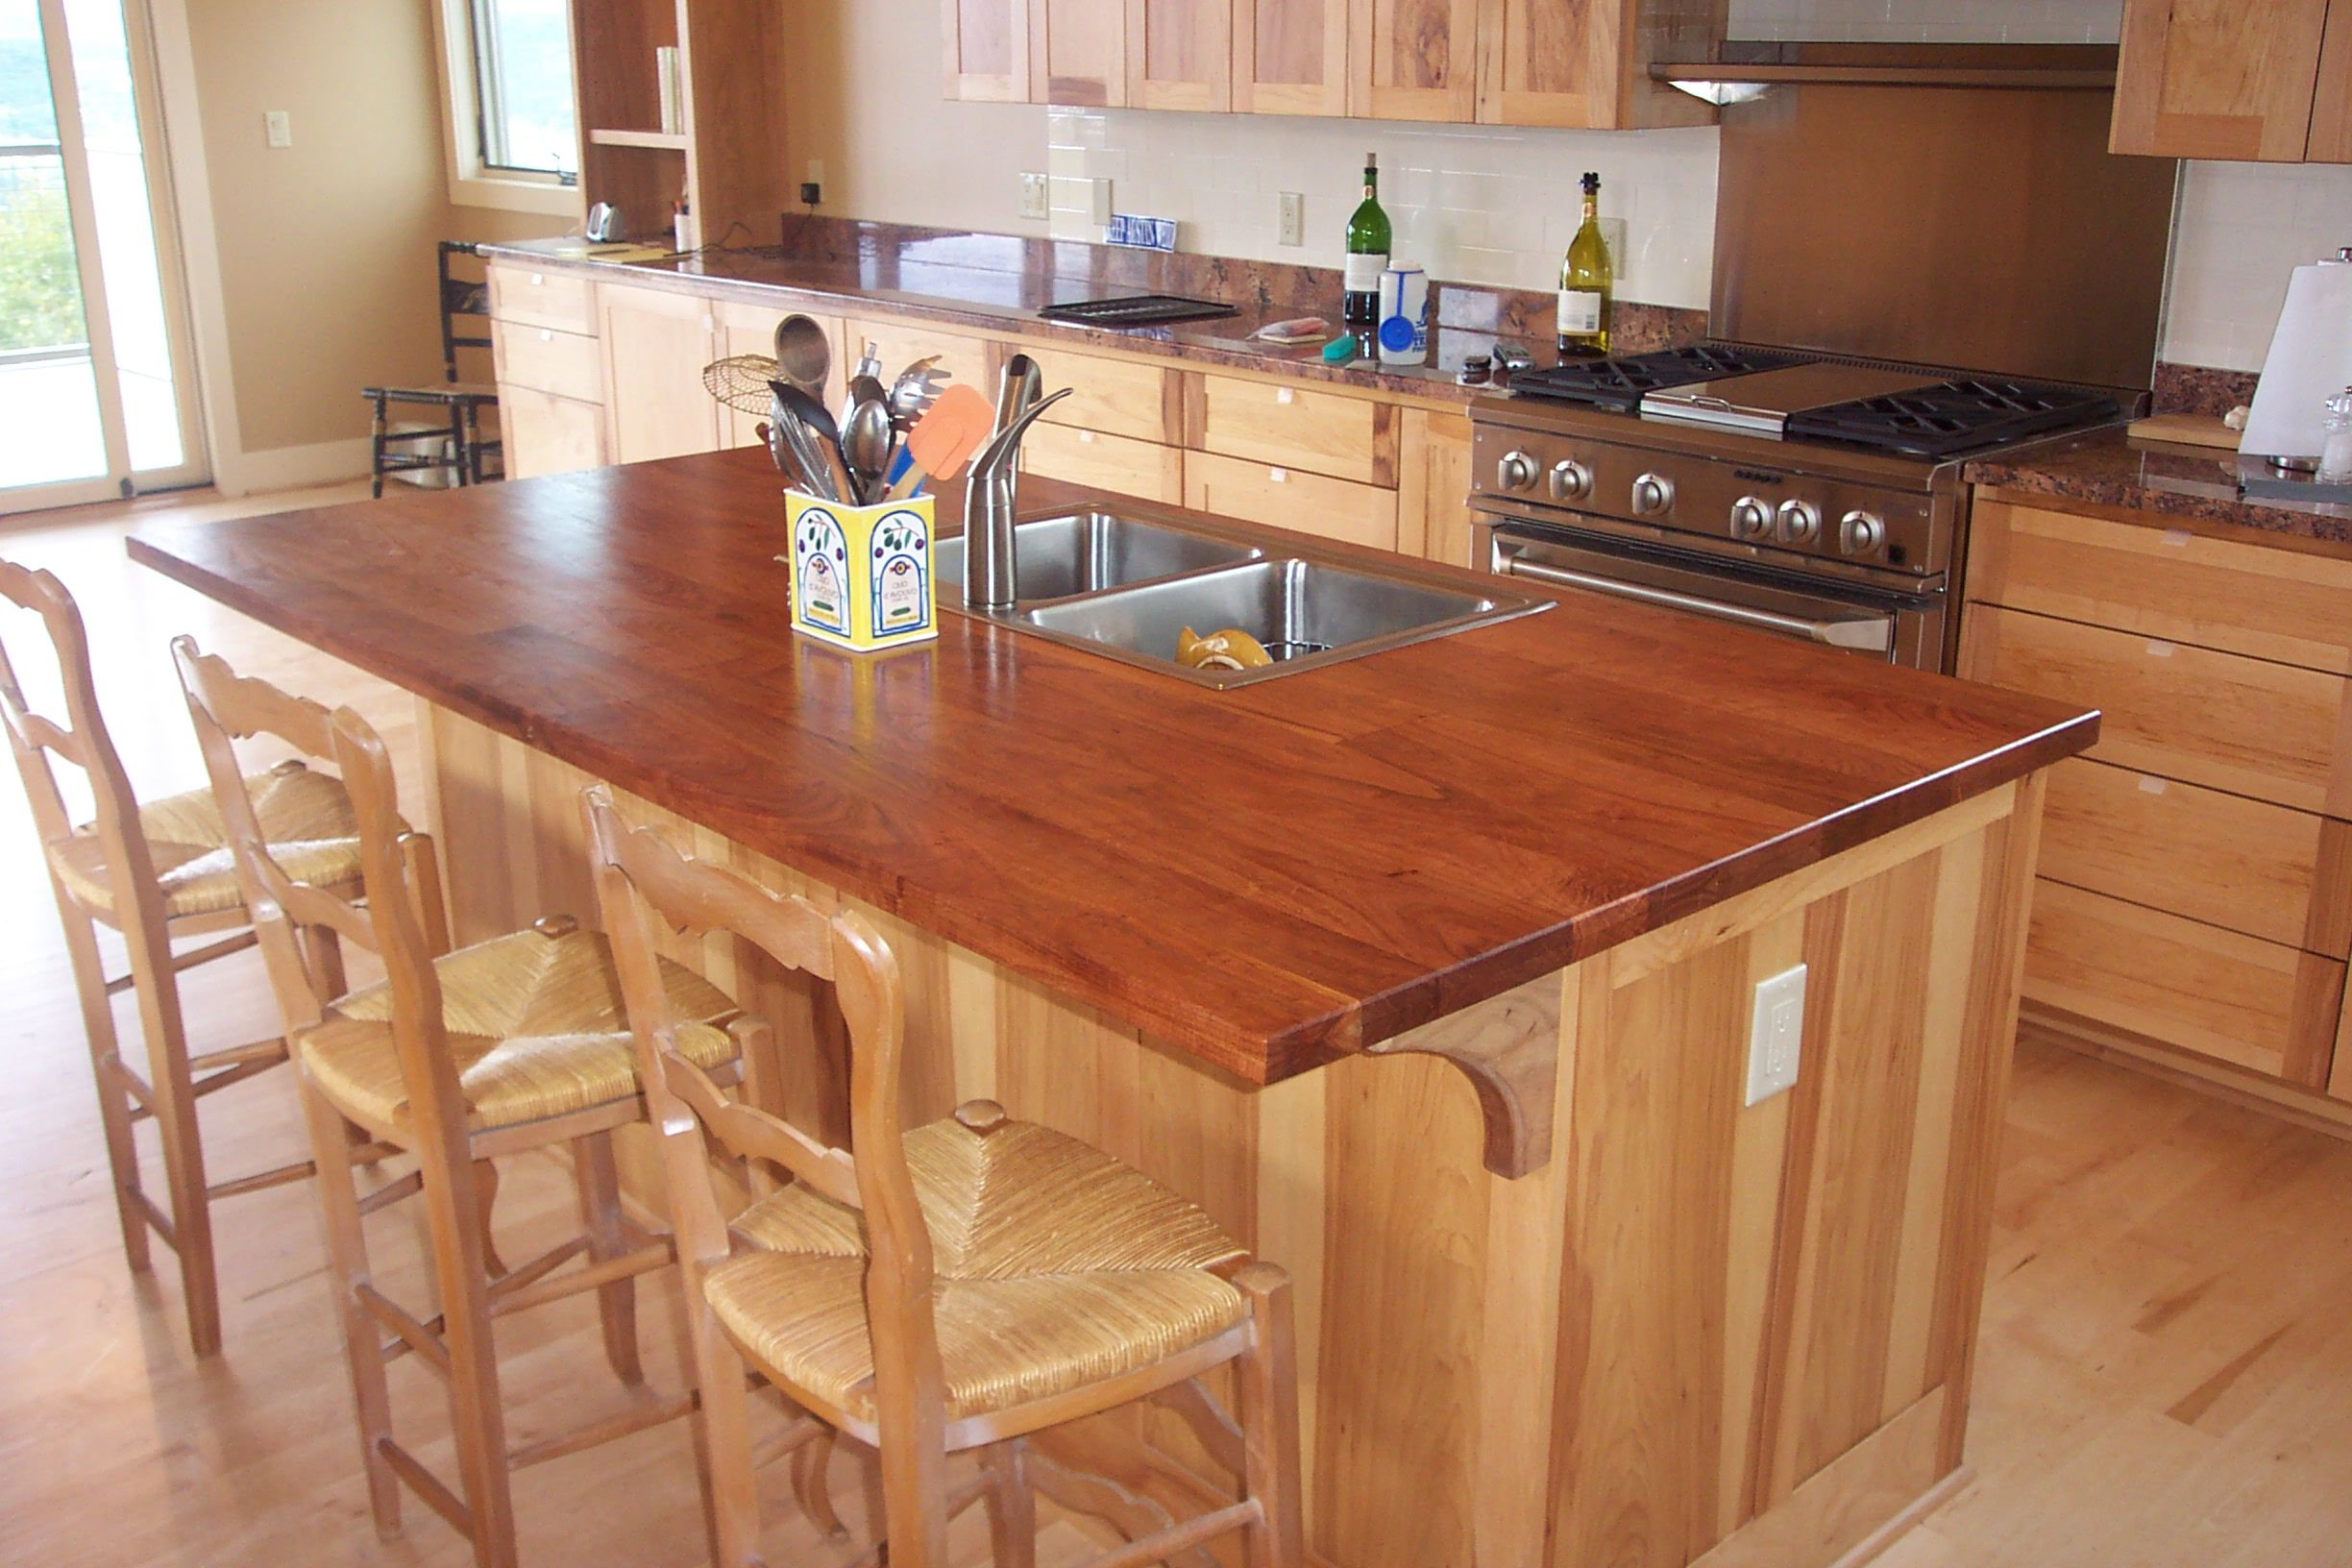 Mesquite Face Grain Or Plank Style Center Island Top With Under Mount Stainless Sink Seating Area On One Kitchen Countertops Traditional Kitchen Countertops